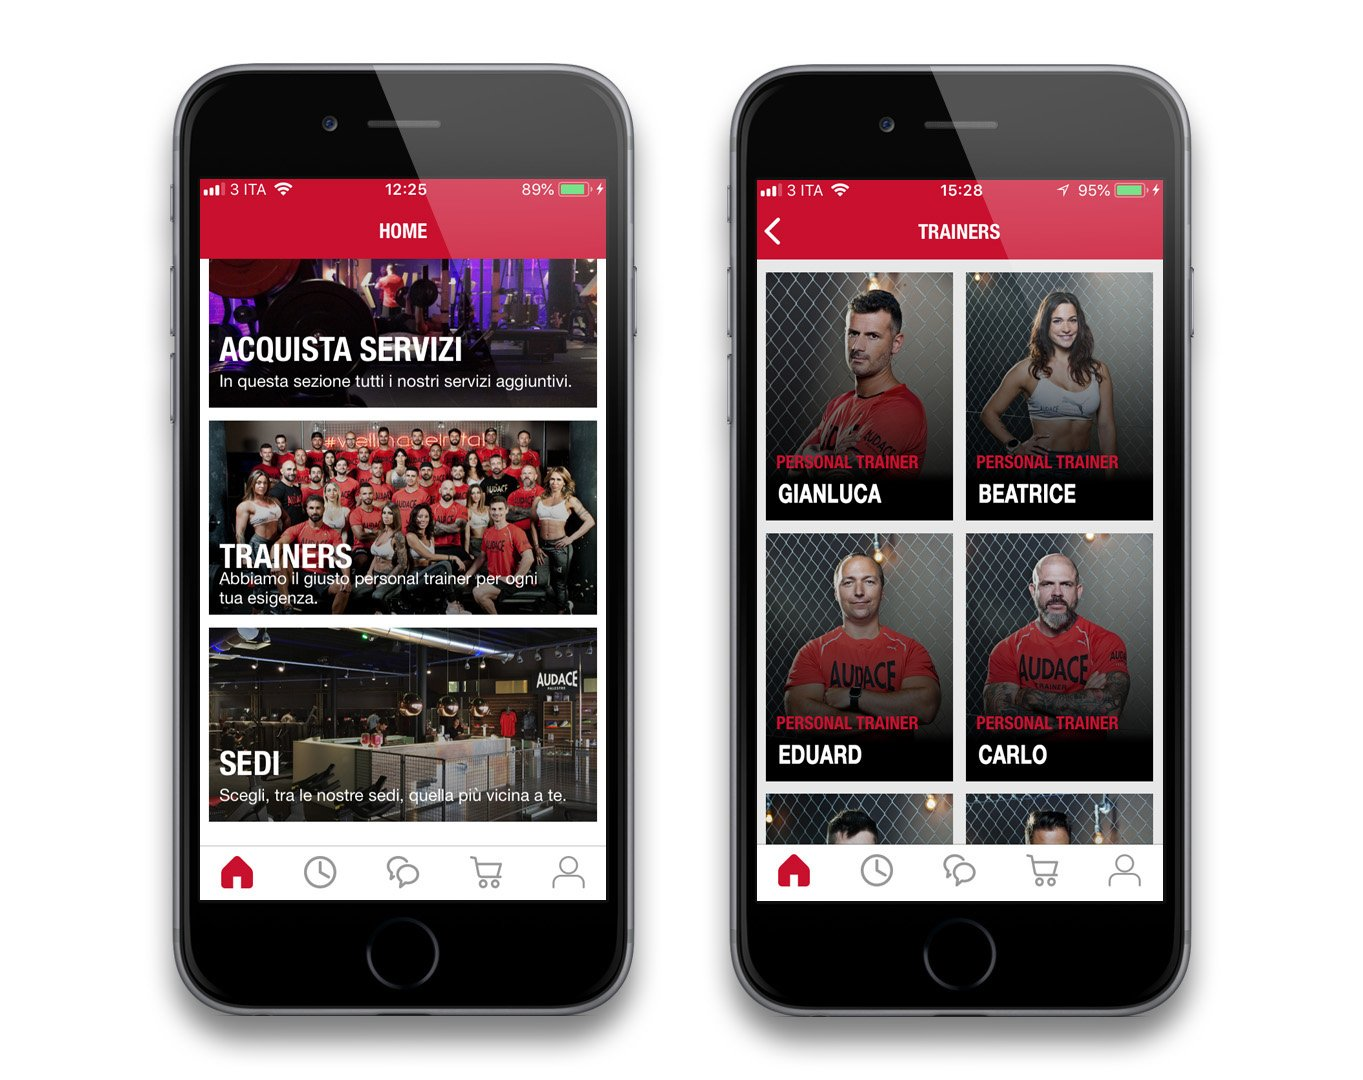 Audace App Personal Trainer